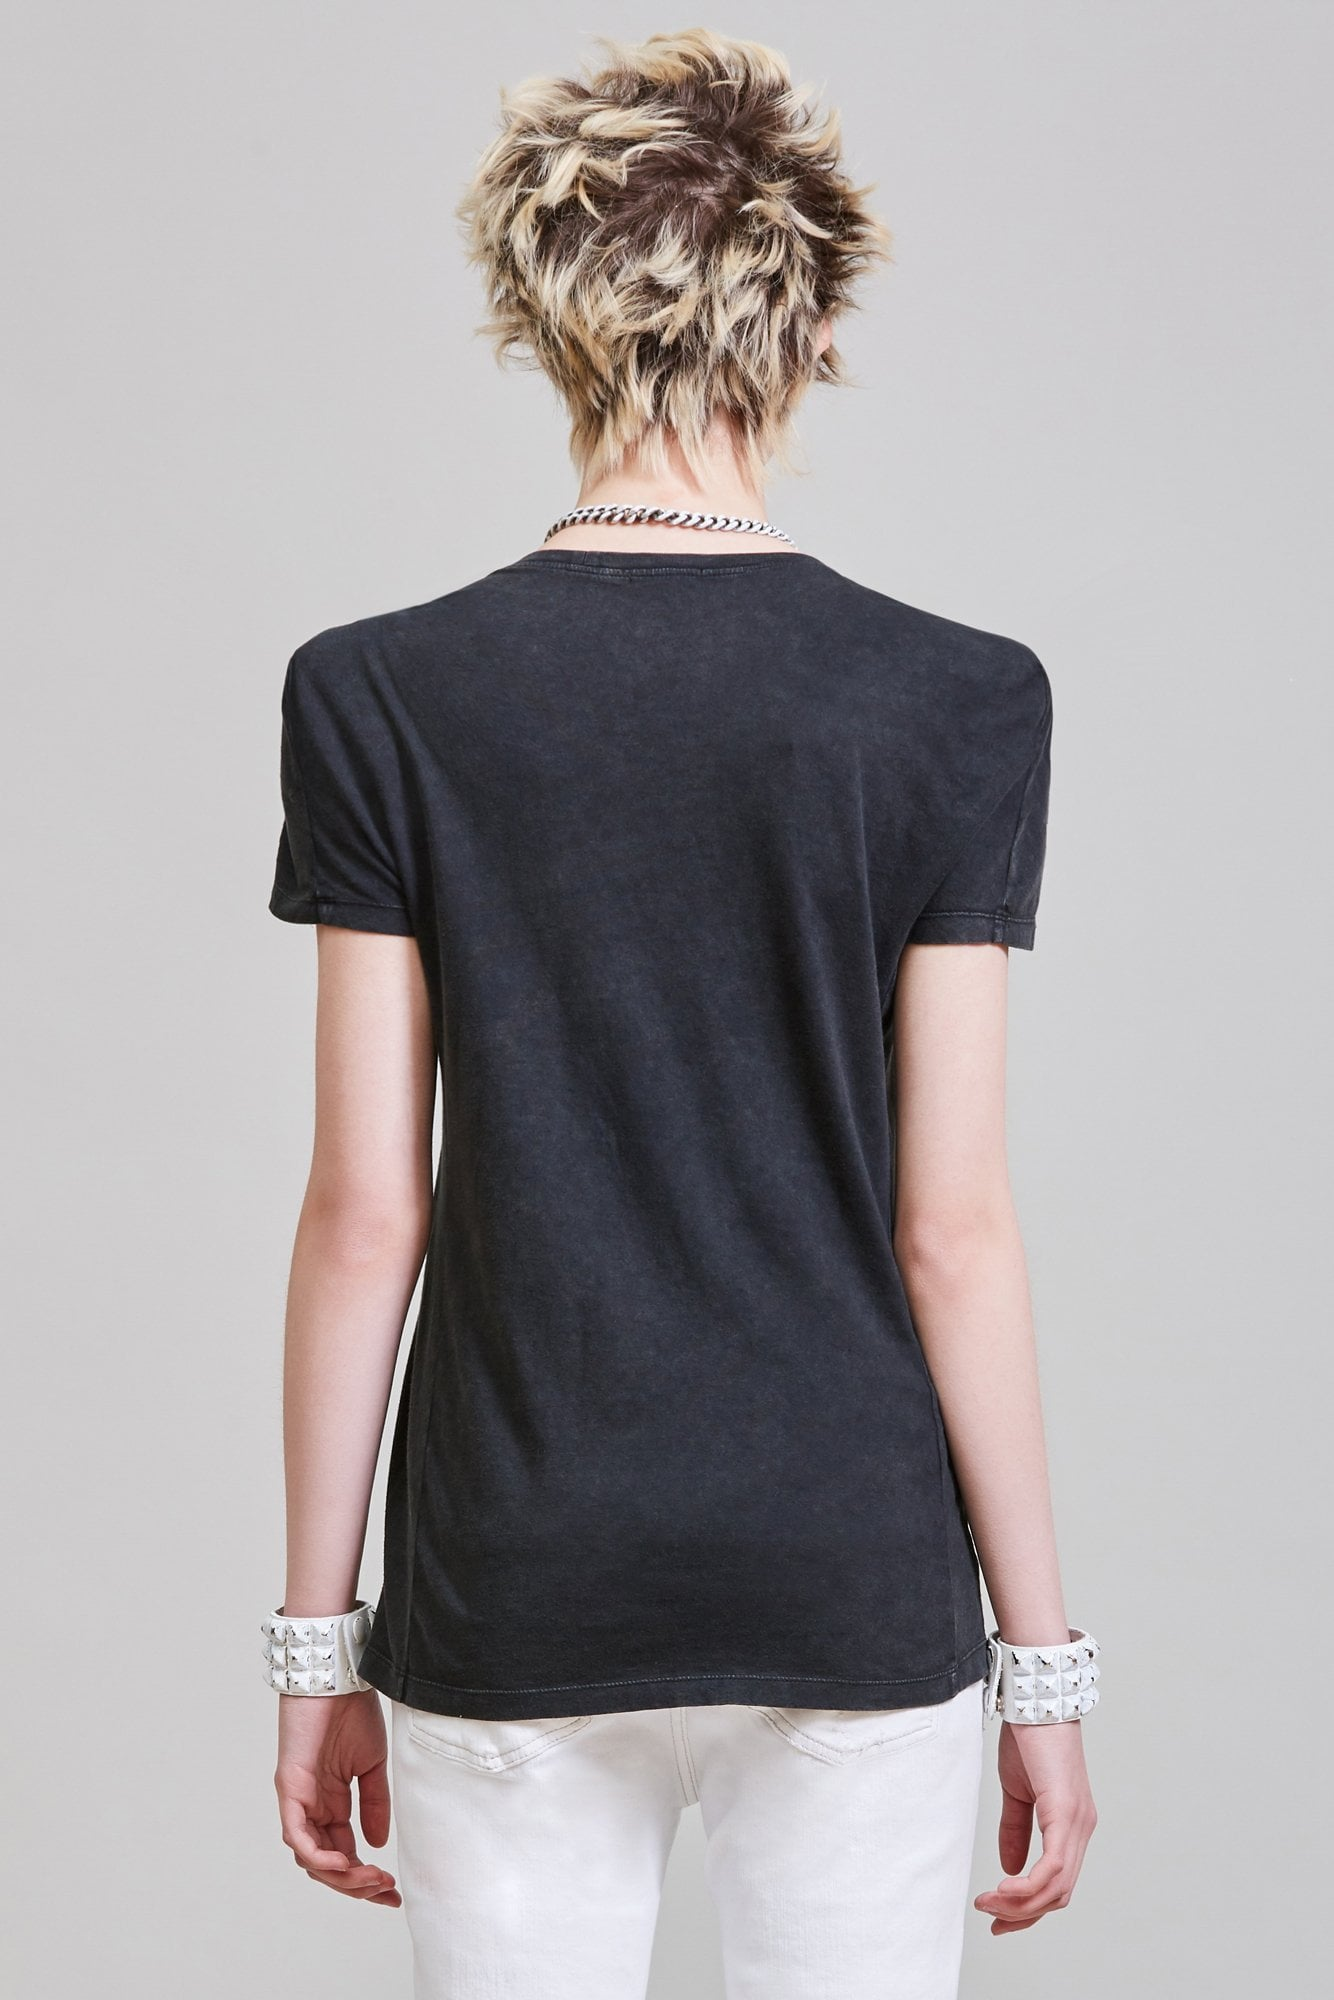 SQUARE SHOULDER TEE - AGED BLACK